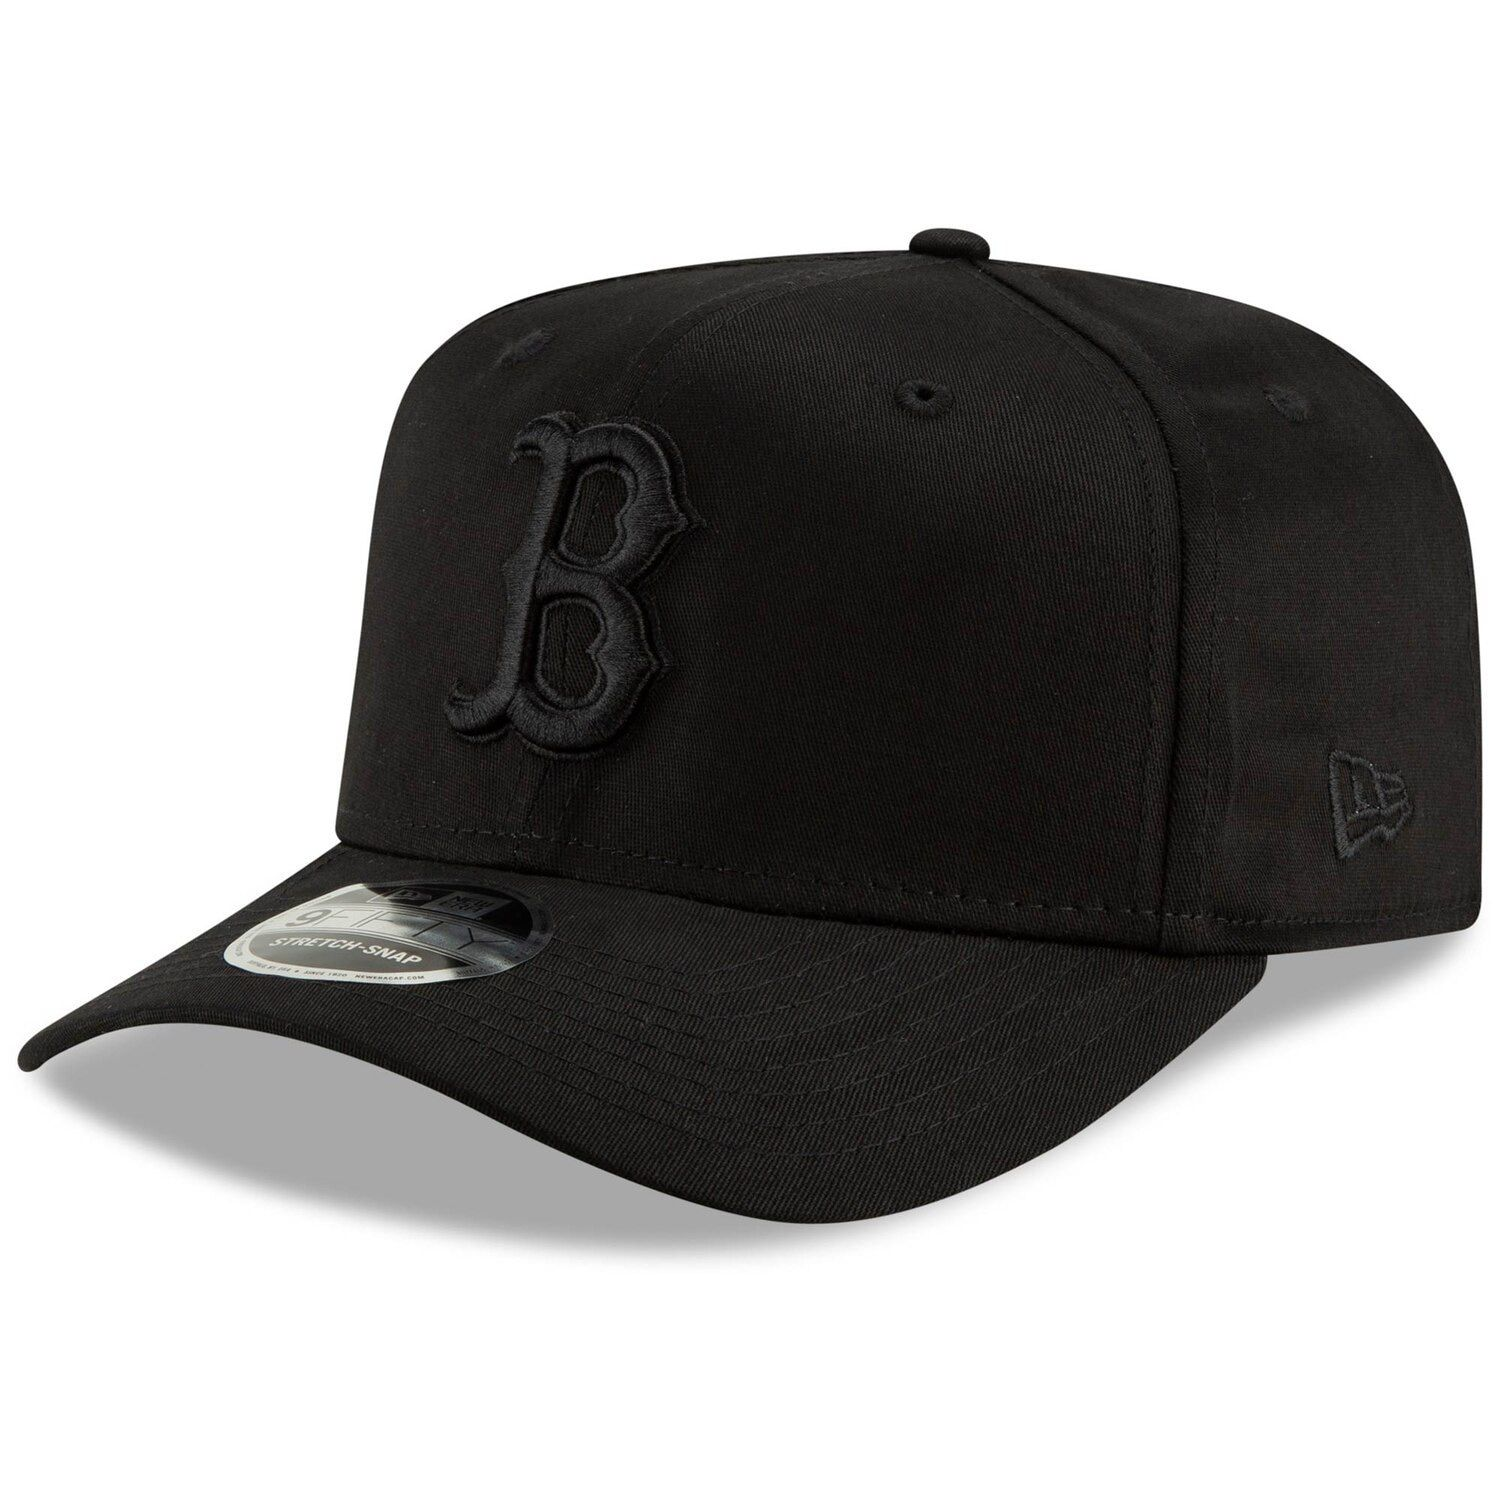 Boston Red Sox New Era Blackout 9fifty Adjustable Snapback Hat Black Snapback Hats Boston Red Sox Red Sox